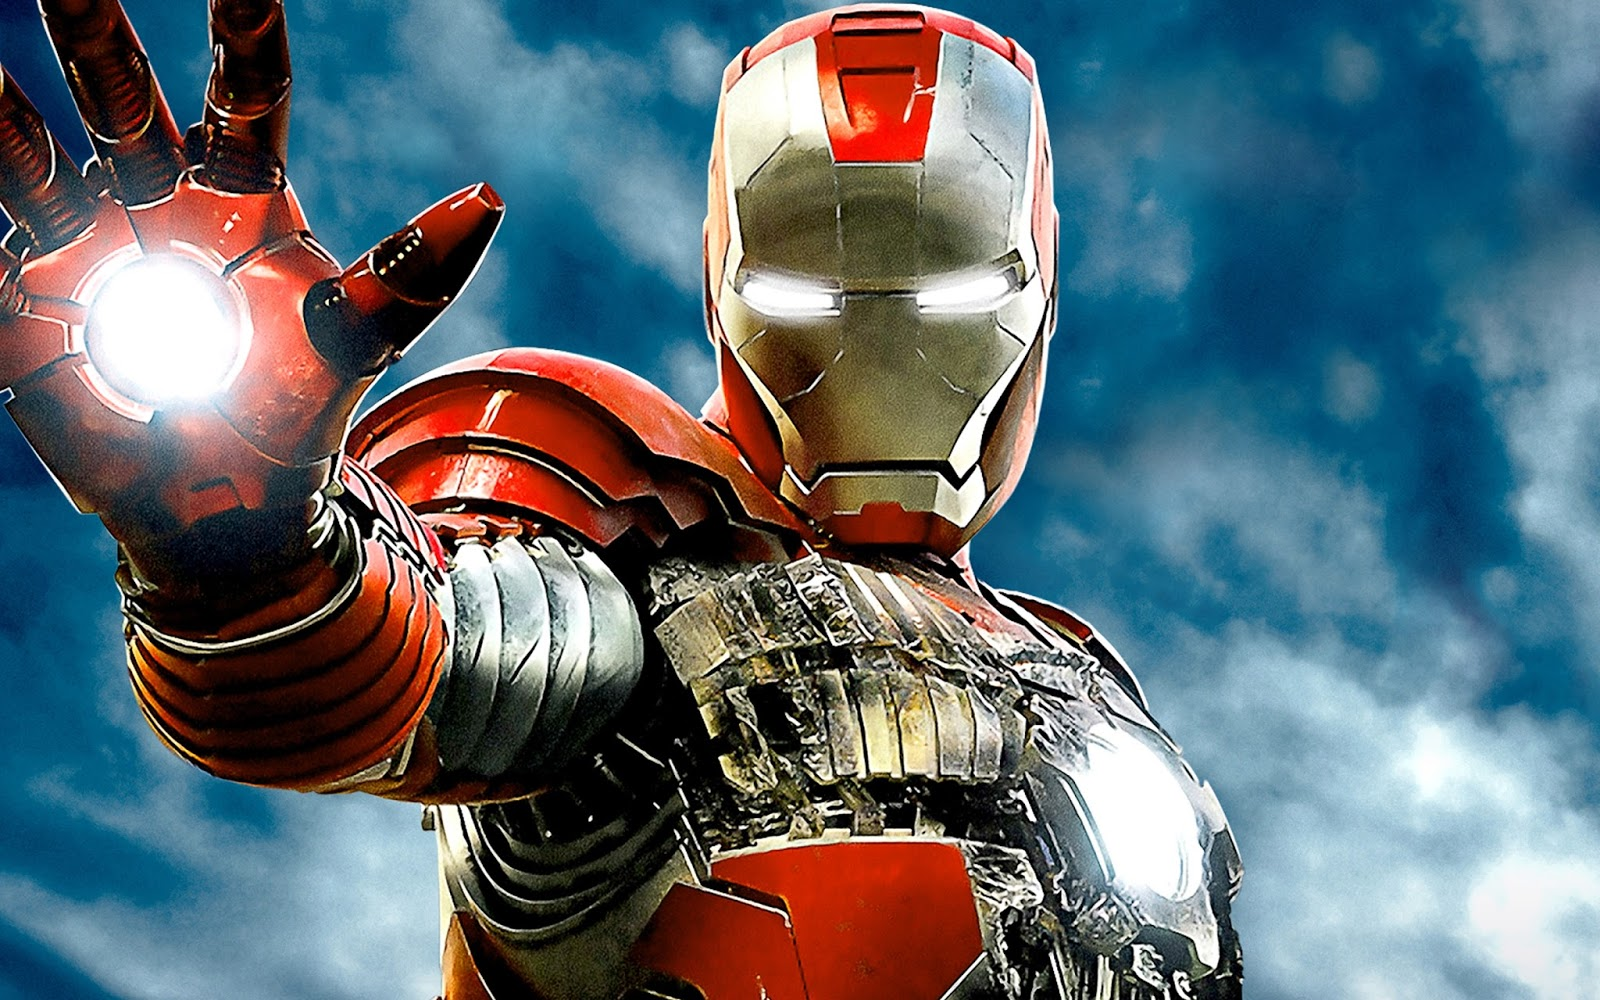 Iron Man Movie Photos HD